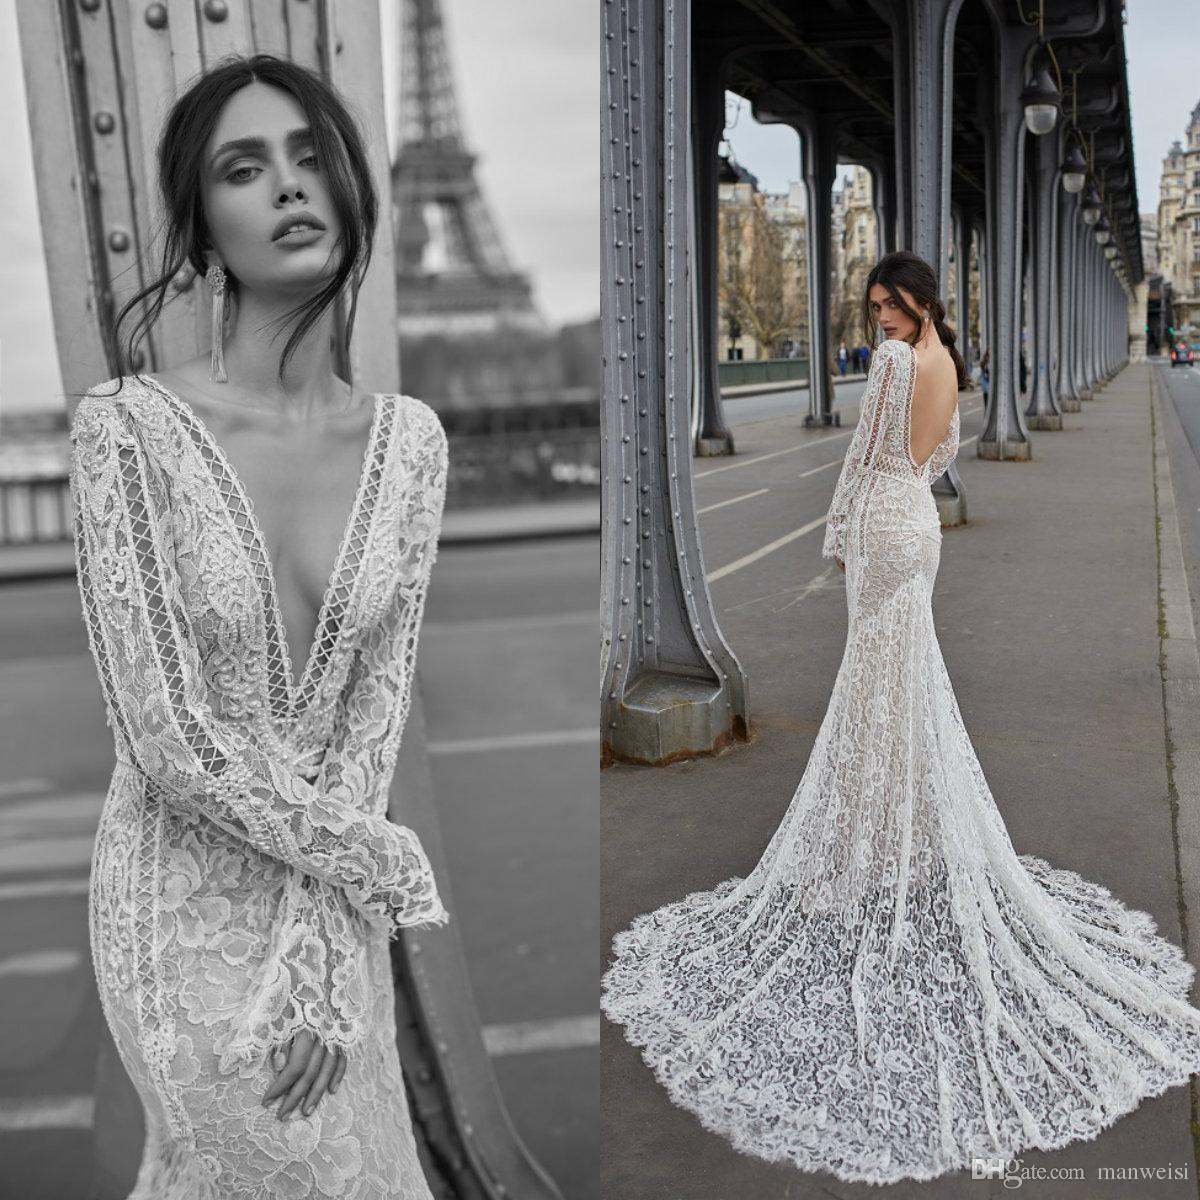 ecab9d9f4d Julie Vino 2019 Mermaid Wedding Dresses Sexy Long Sleeves Bridal Gowns Full  Lace Appliqued Deep V Neck Backless Wedding Dress Mermaid Wedding Dress  Simple ...